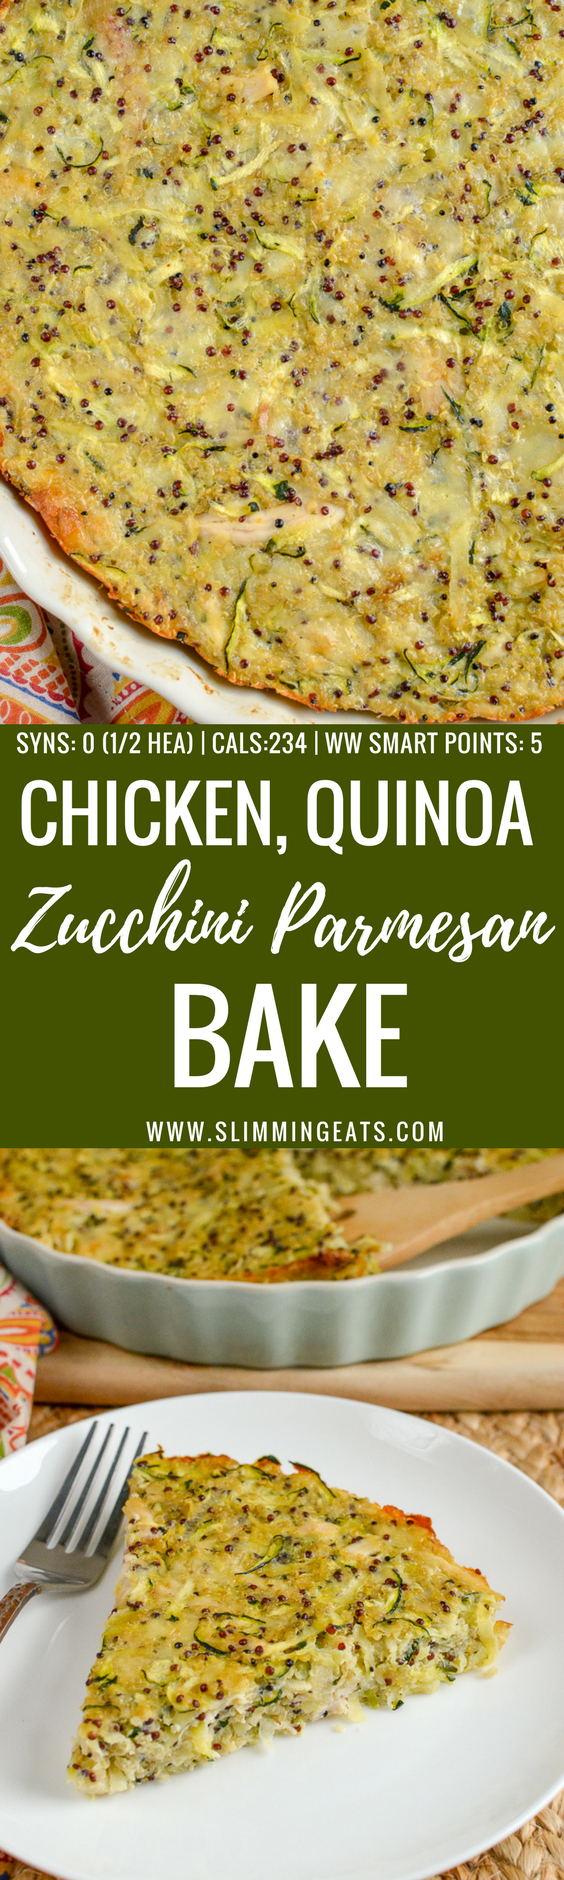 Syn Free Chicken, Zucchini, Parmesan and Quinoa Bake makes the perfect protein-packed lunch or snack on the go for your the entire family. Gluten-Free, Slimming World and Weight Watchers friendly | www.slimmingeats.com